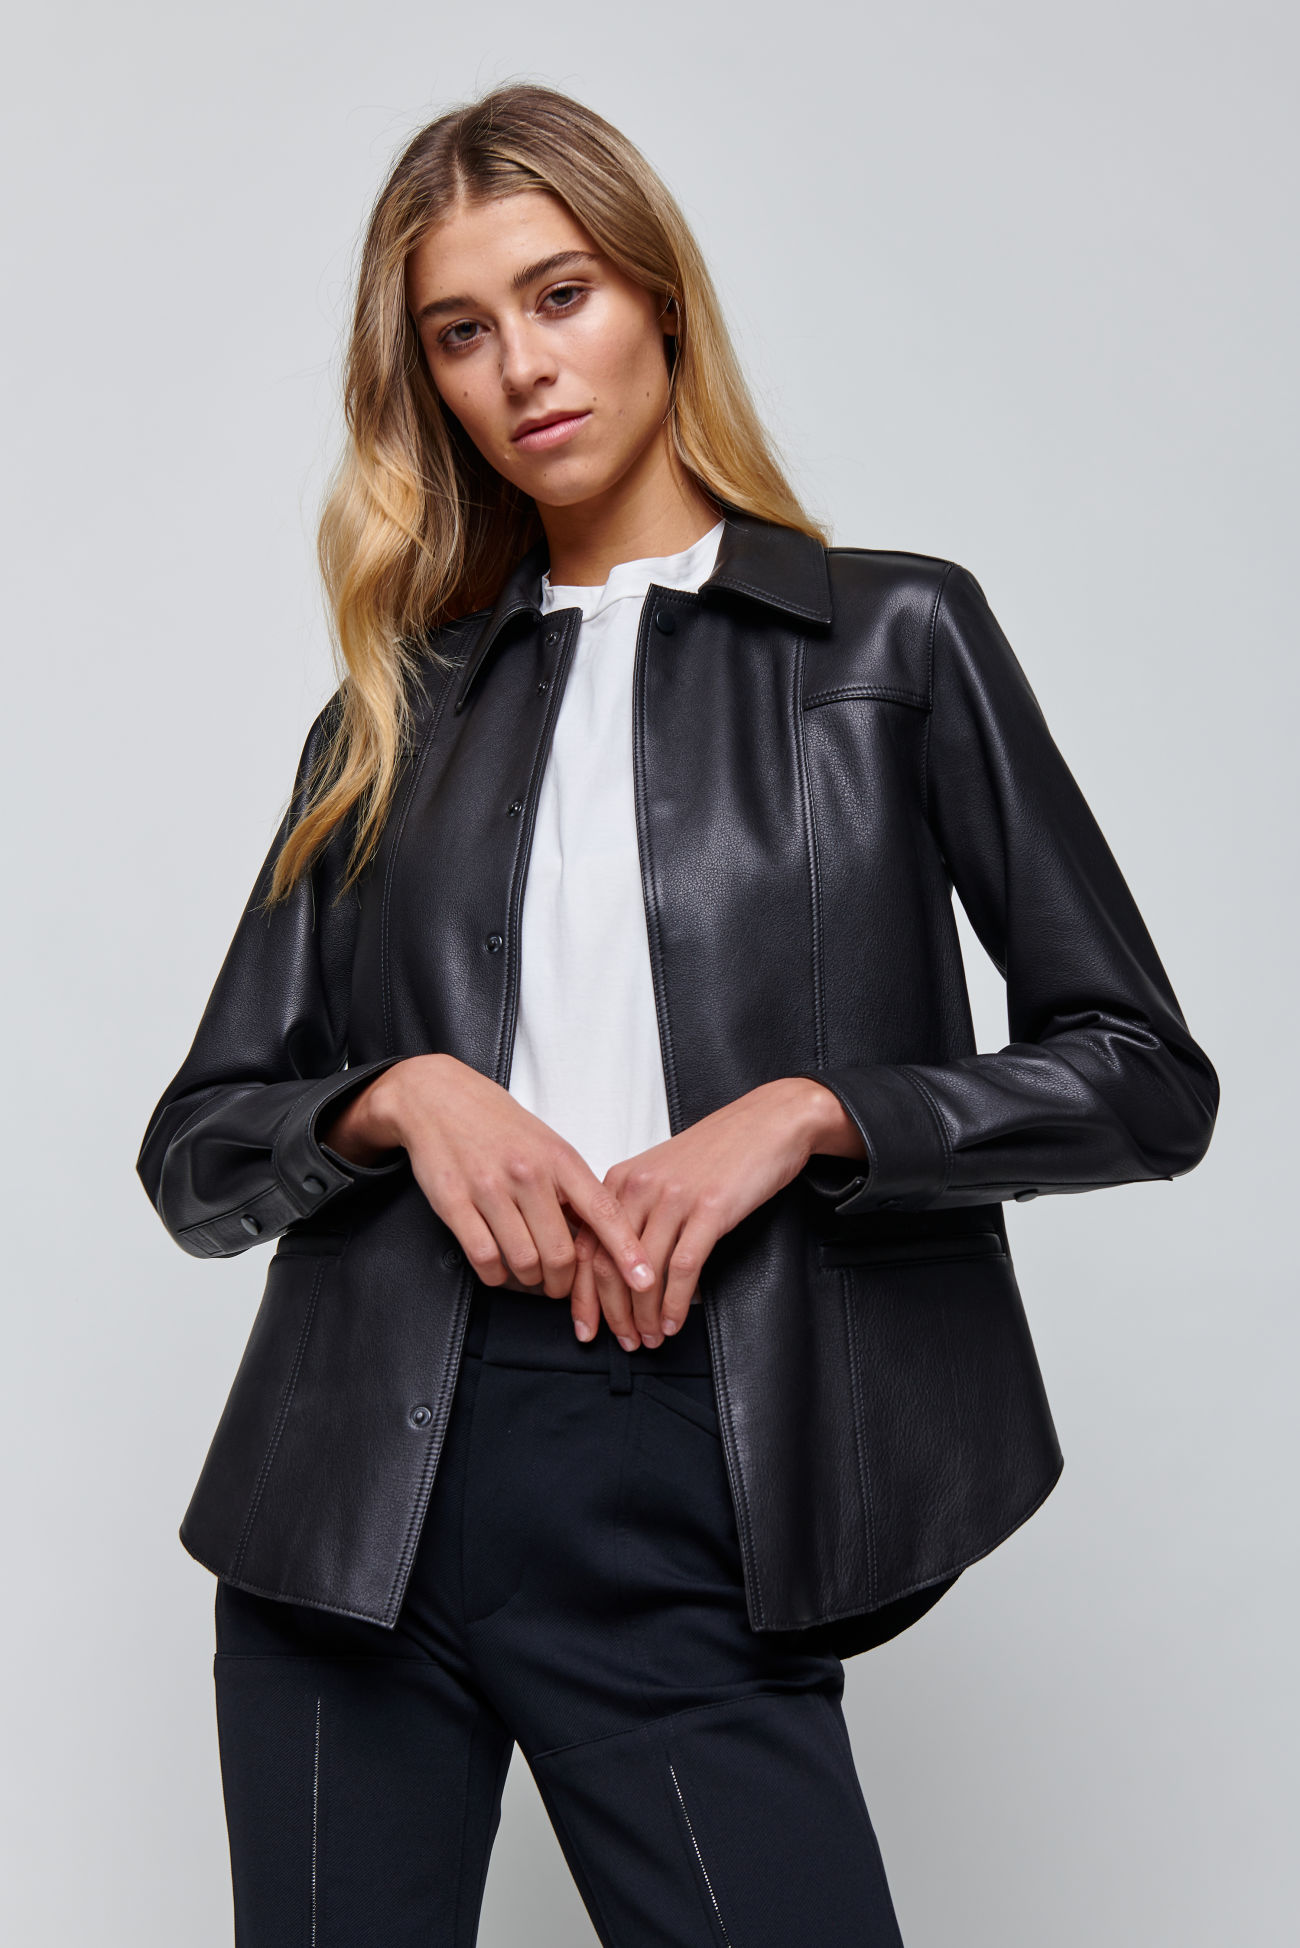 Leather blazer made of slightly textured Nappa